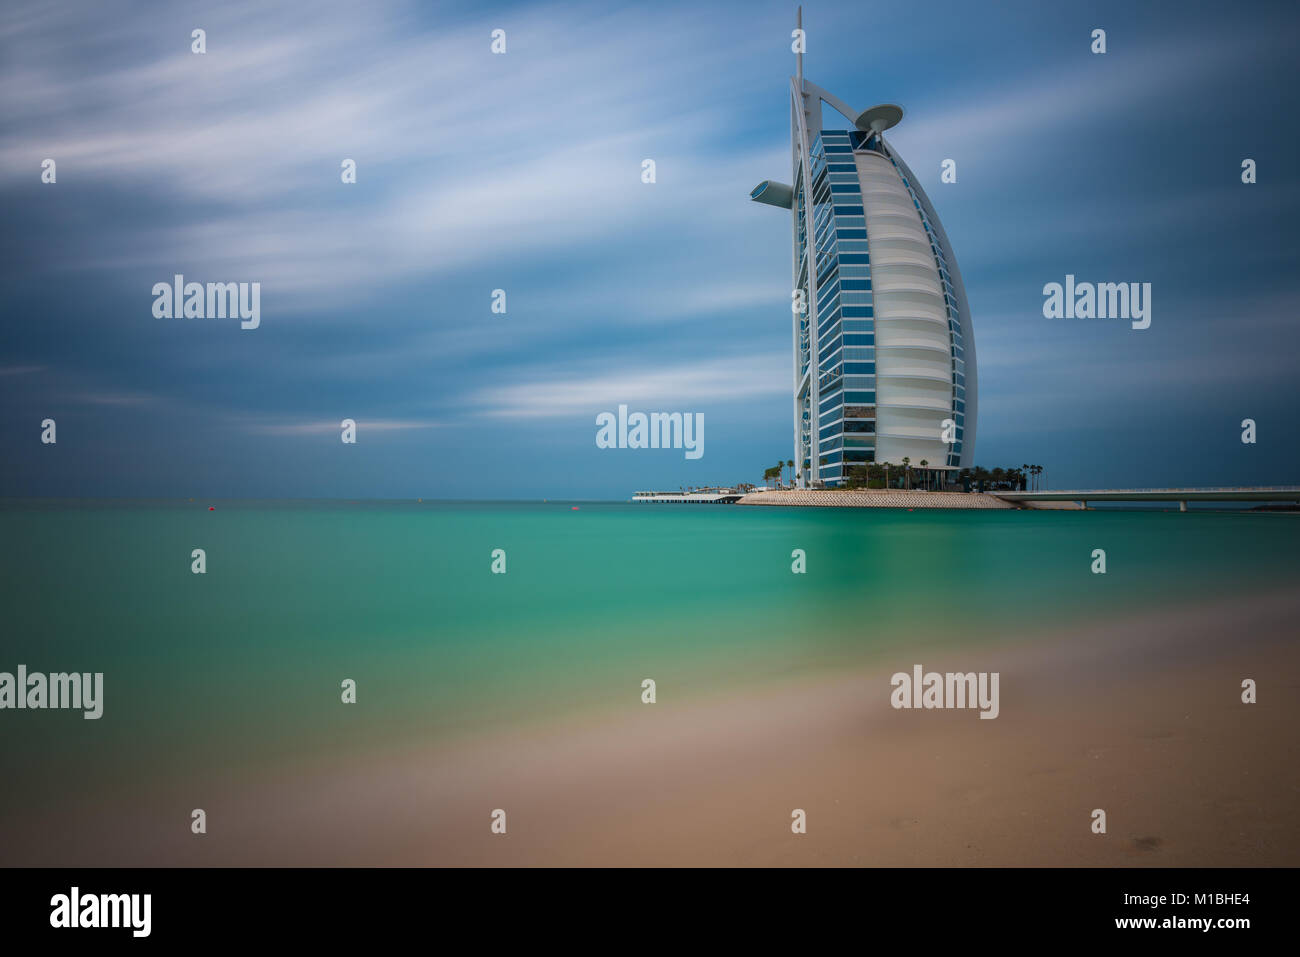 Views of the luxury beachfront hotel Burj Al Arab located on a man-made island in Dubai, UAE, United Arab Emirates - Stock Image